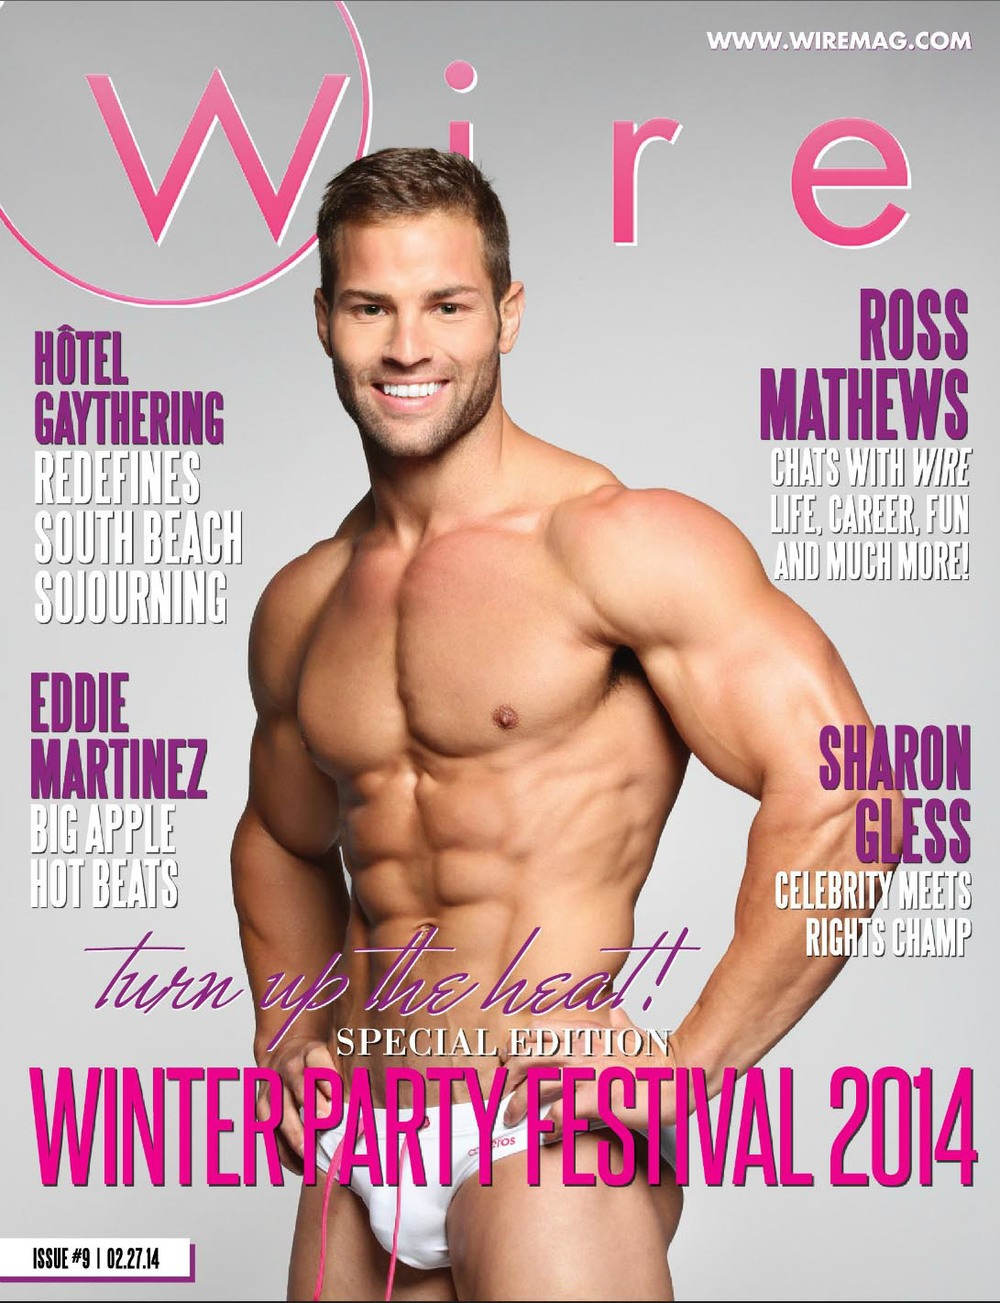 The cover of Wire Magazine, February 2014.